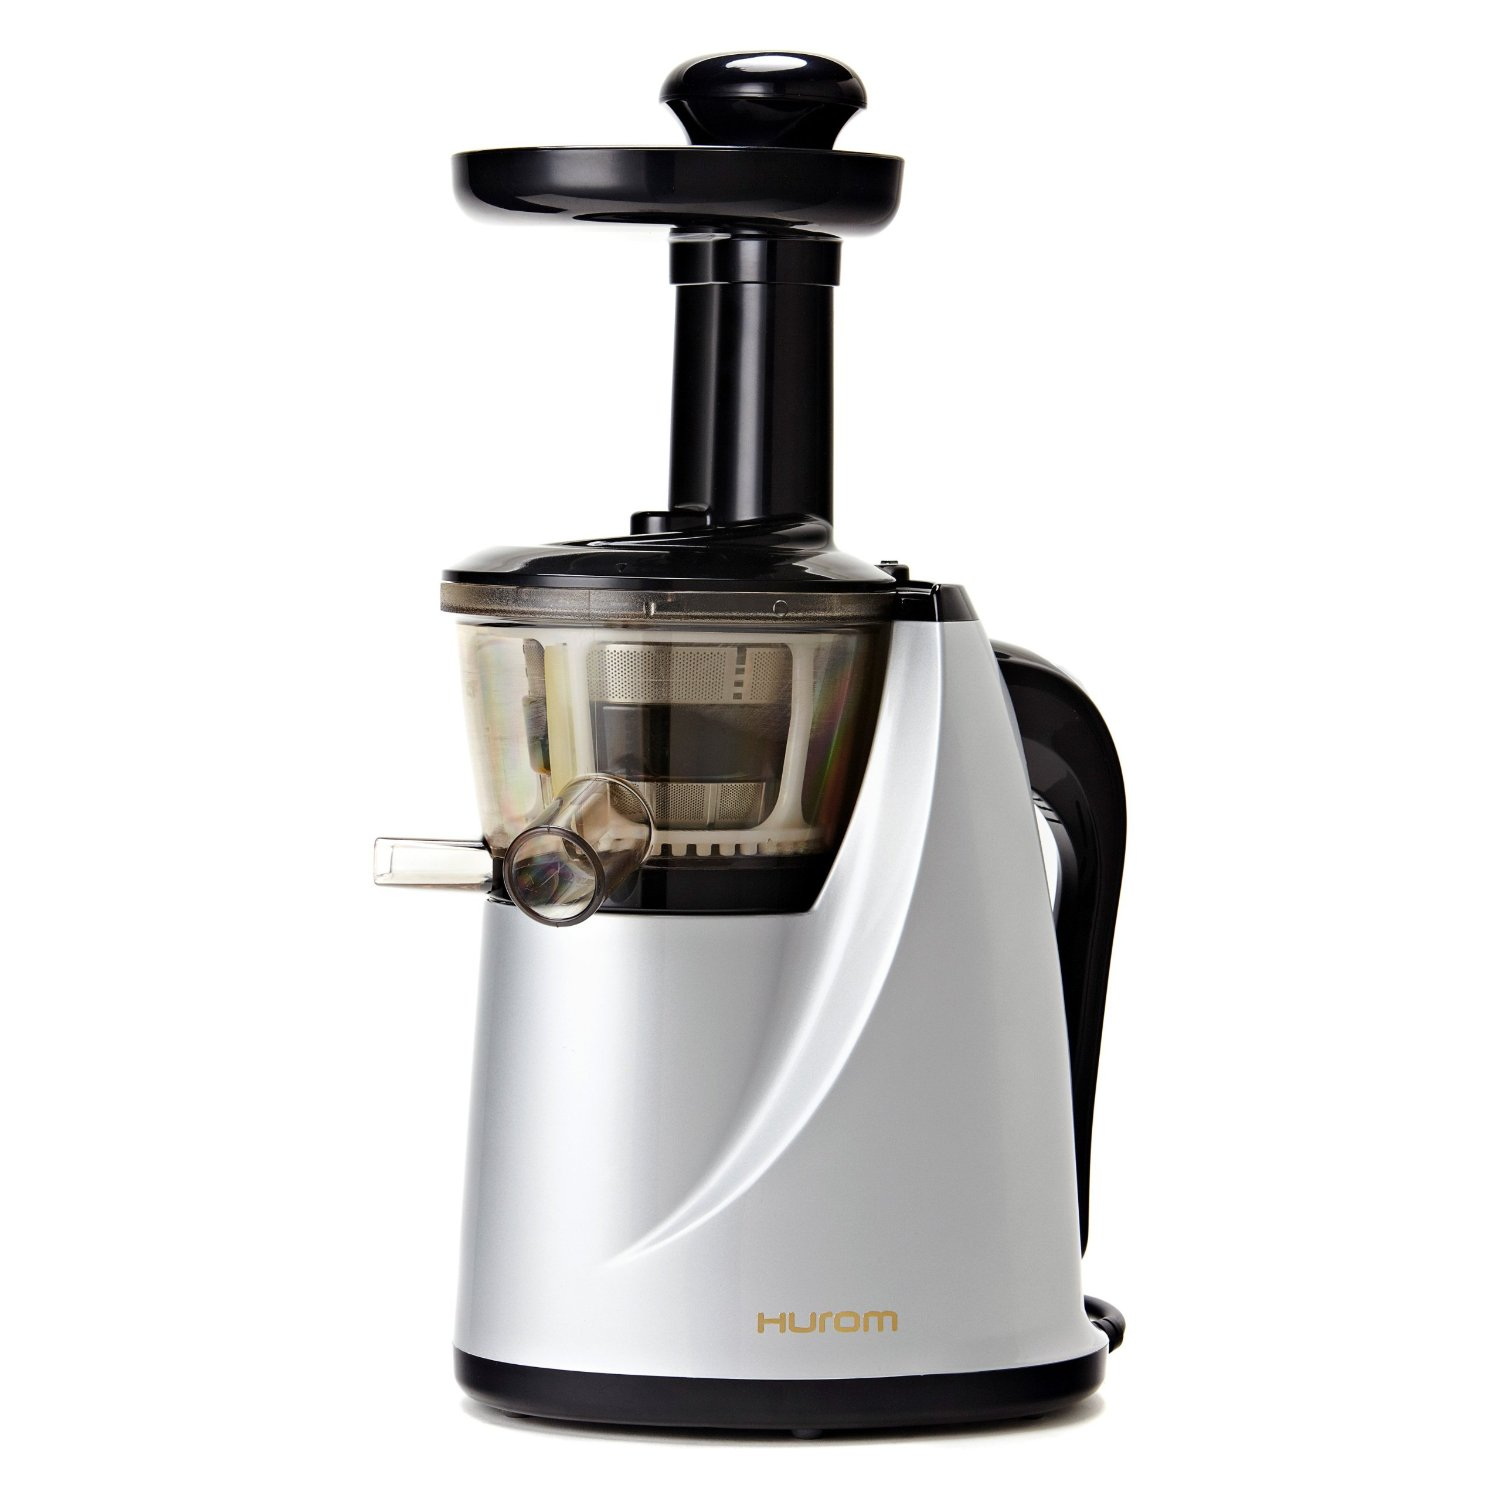 Champion Slow Masticating Juicer : Hurom HU-100 Masticating Slow Juicer Review - Best Cold ...